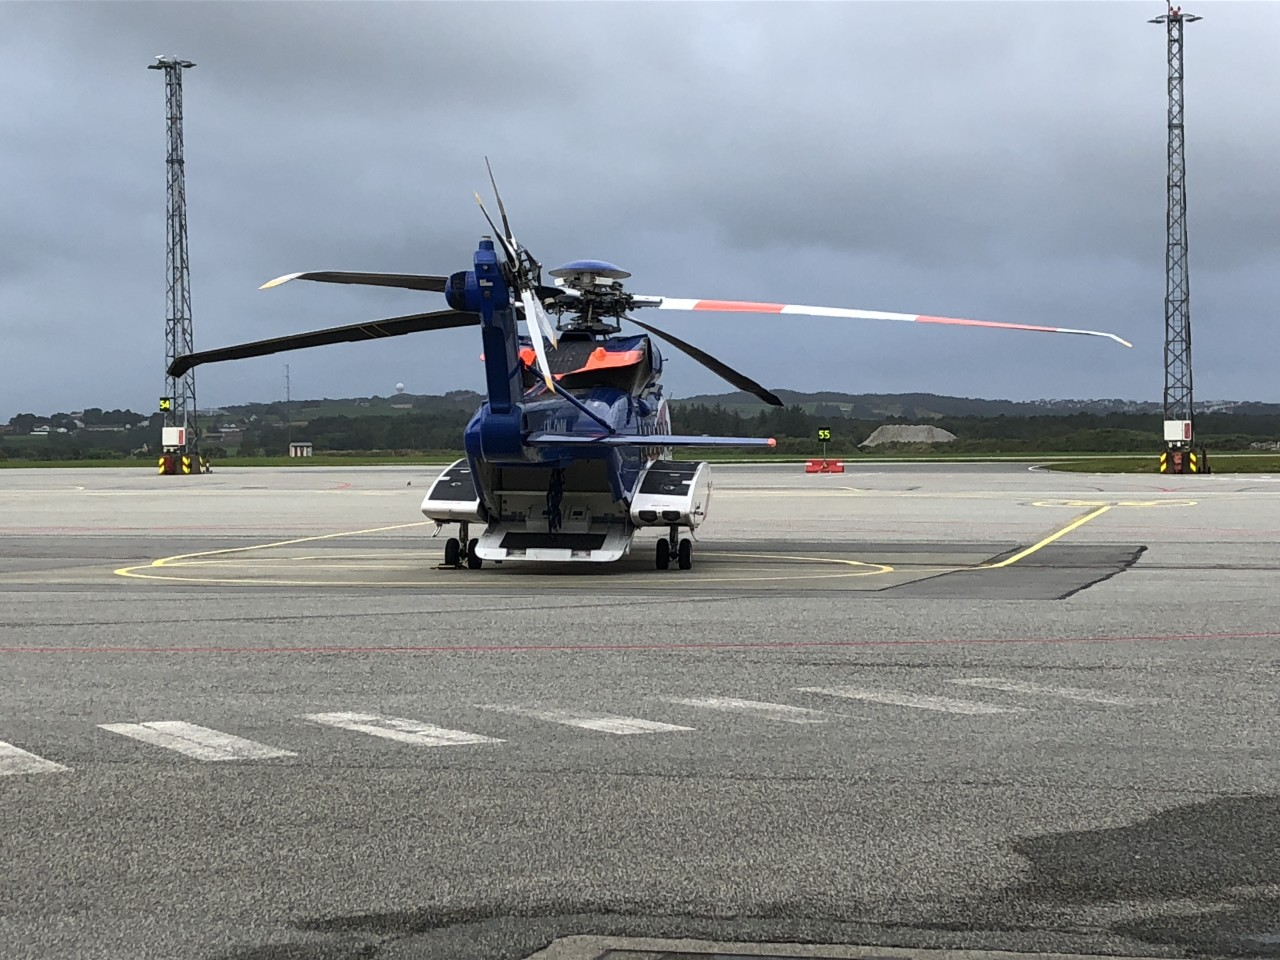 Helikopter klar for avgang